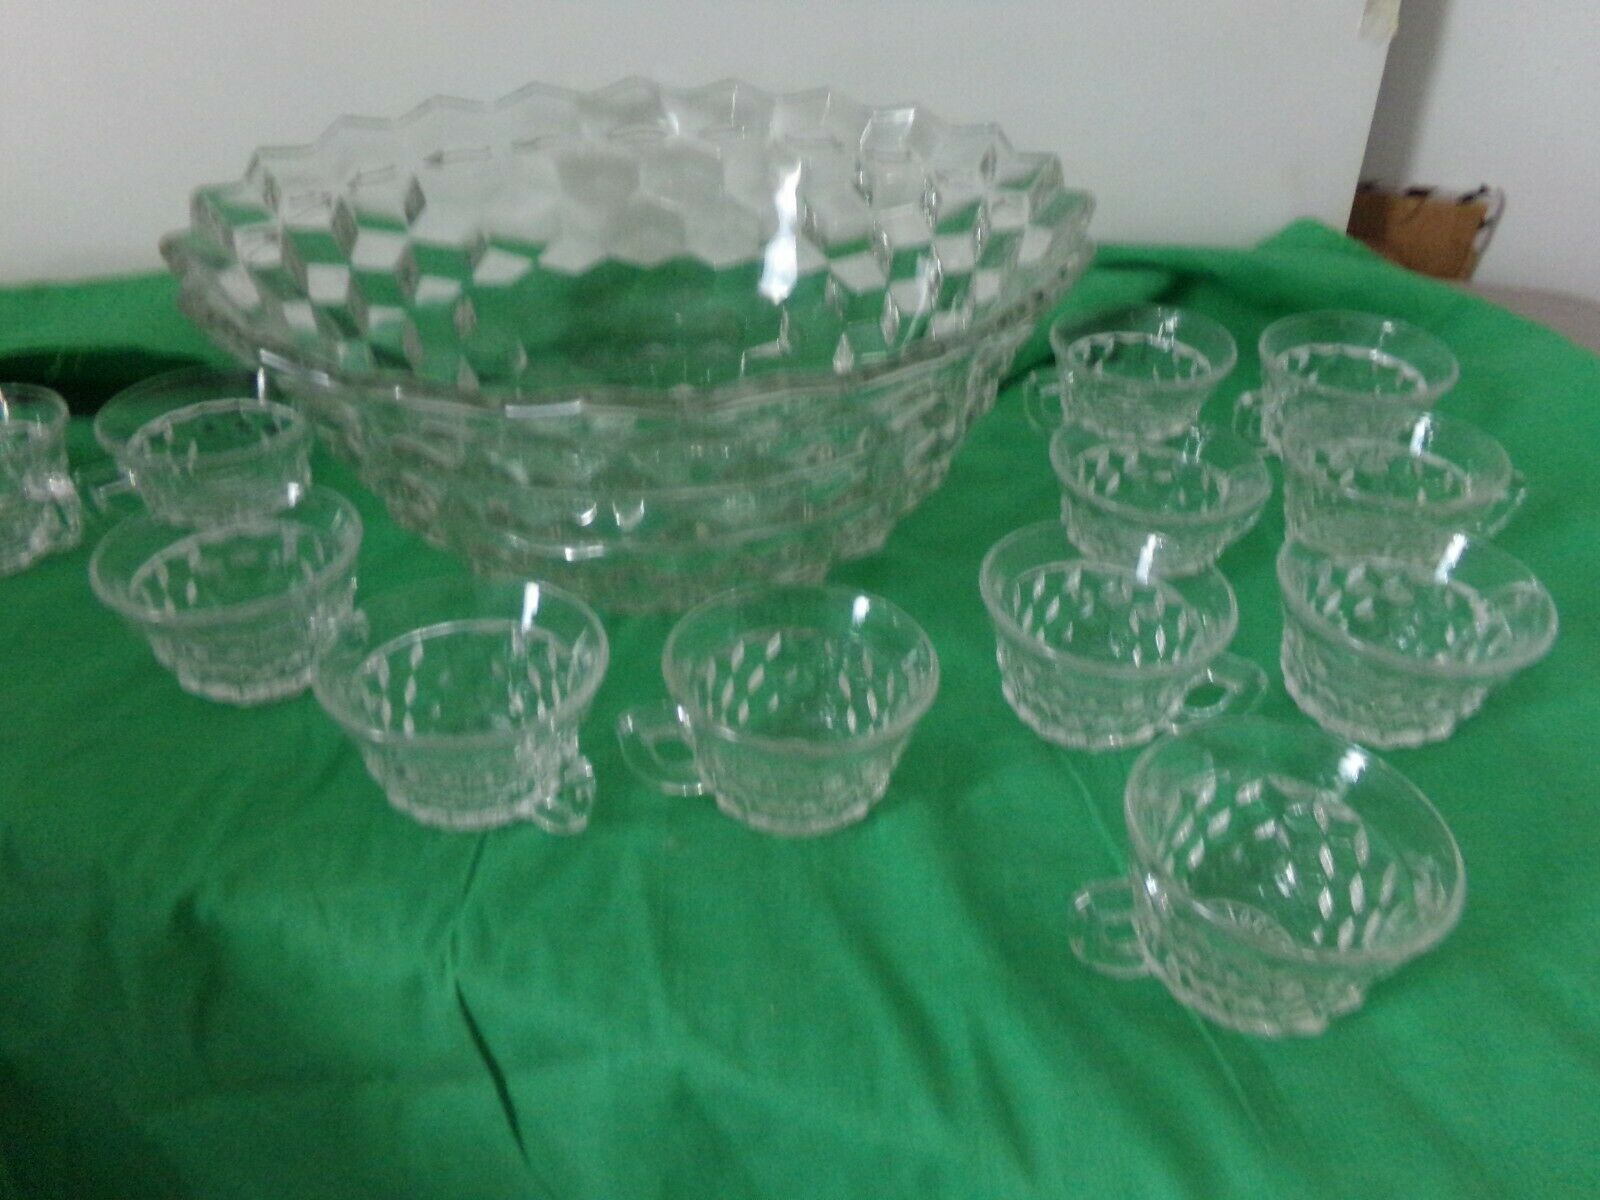 FOSTORIA AMERICAN PATTERN PUNCH BOWL with punch cups - $123.75